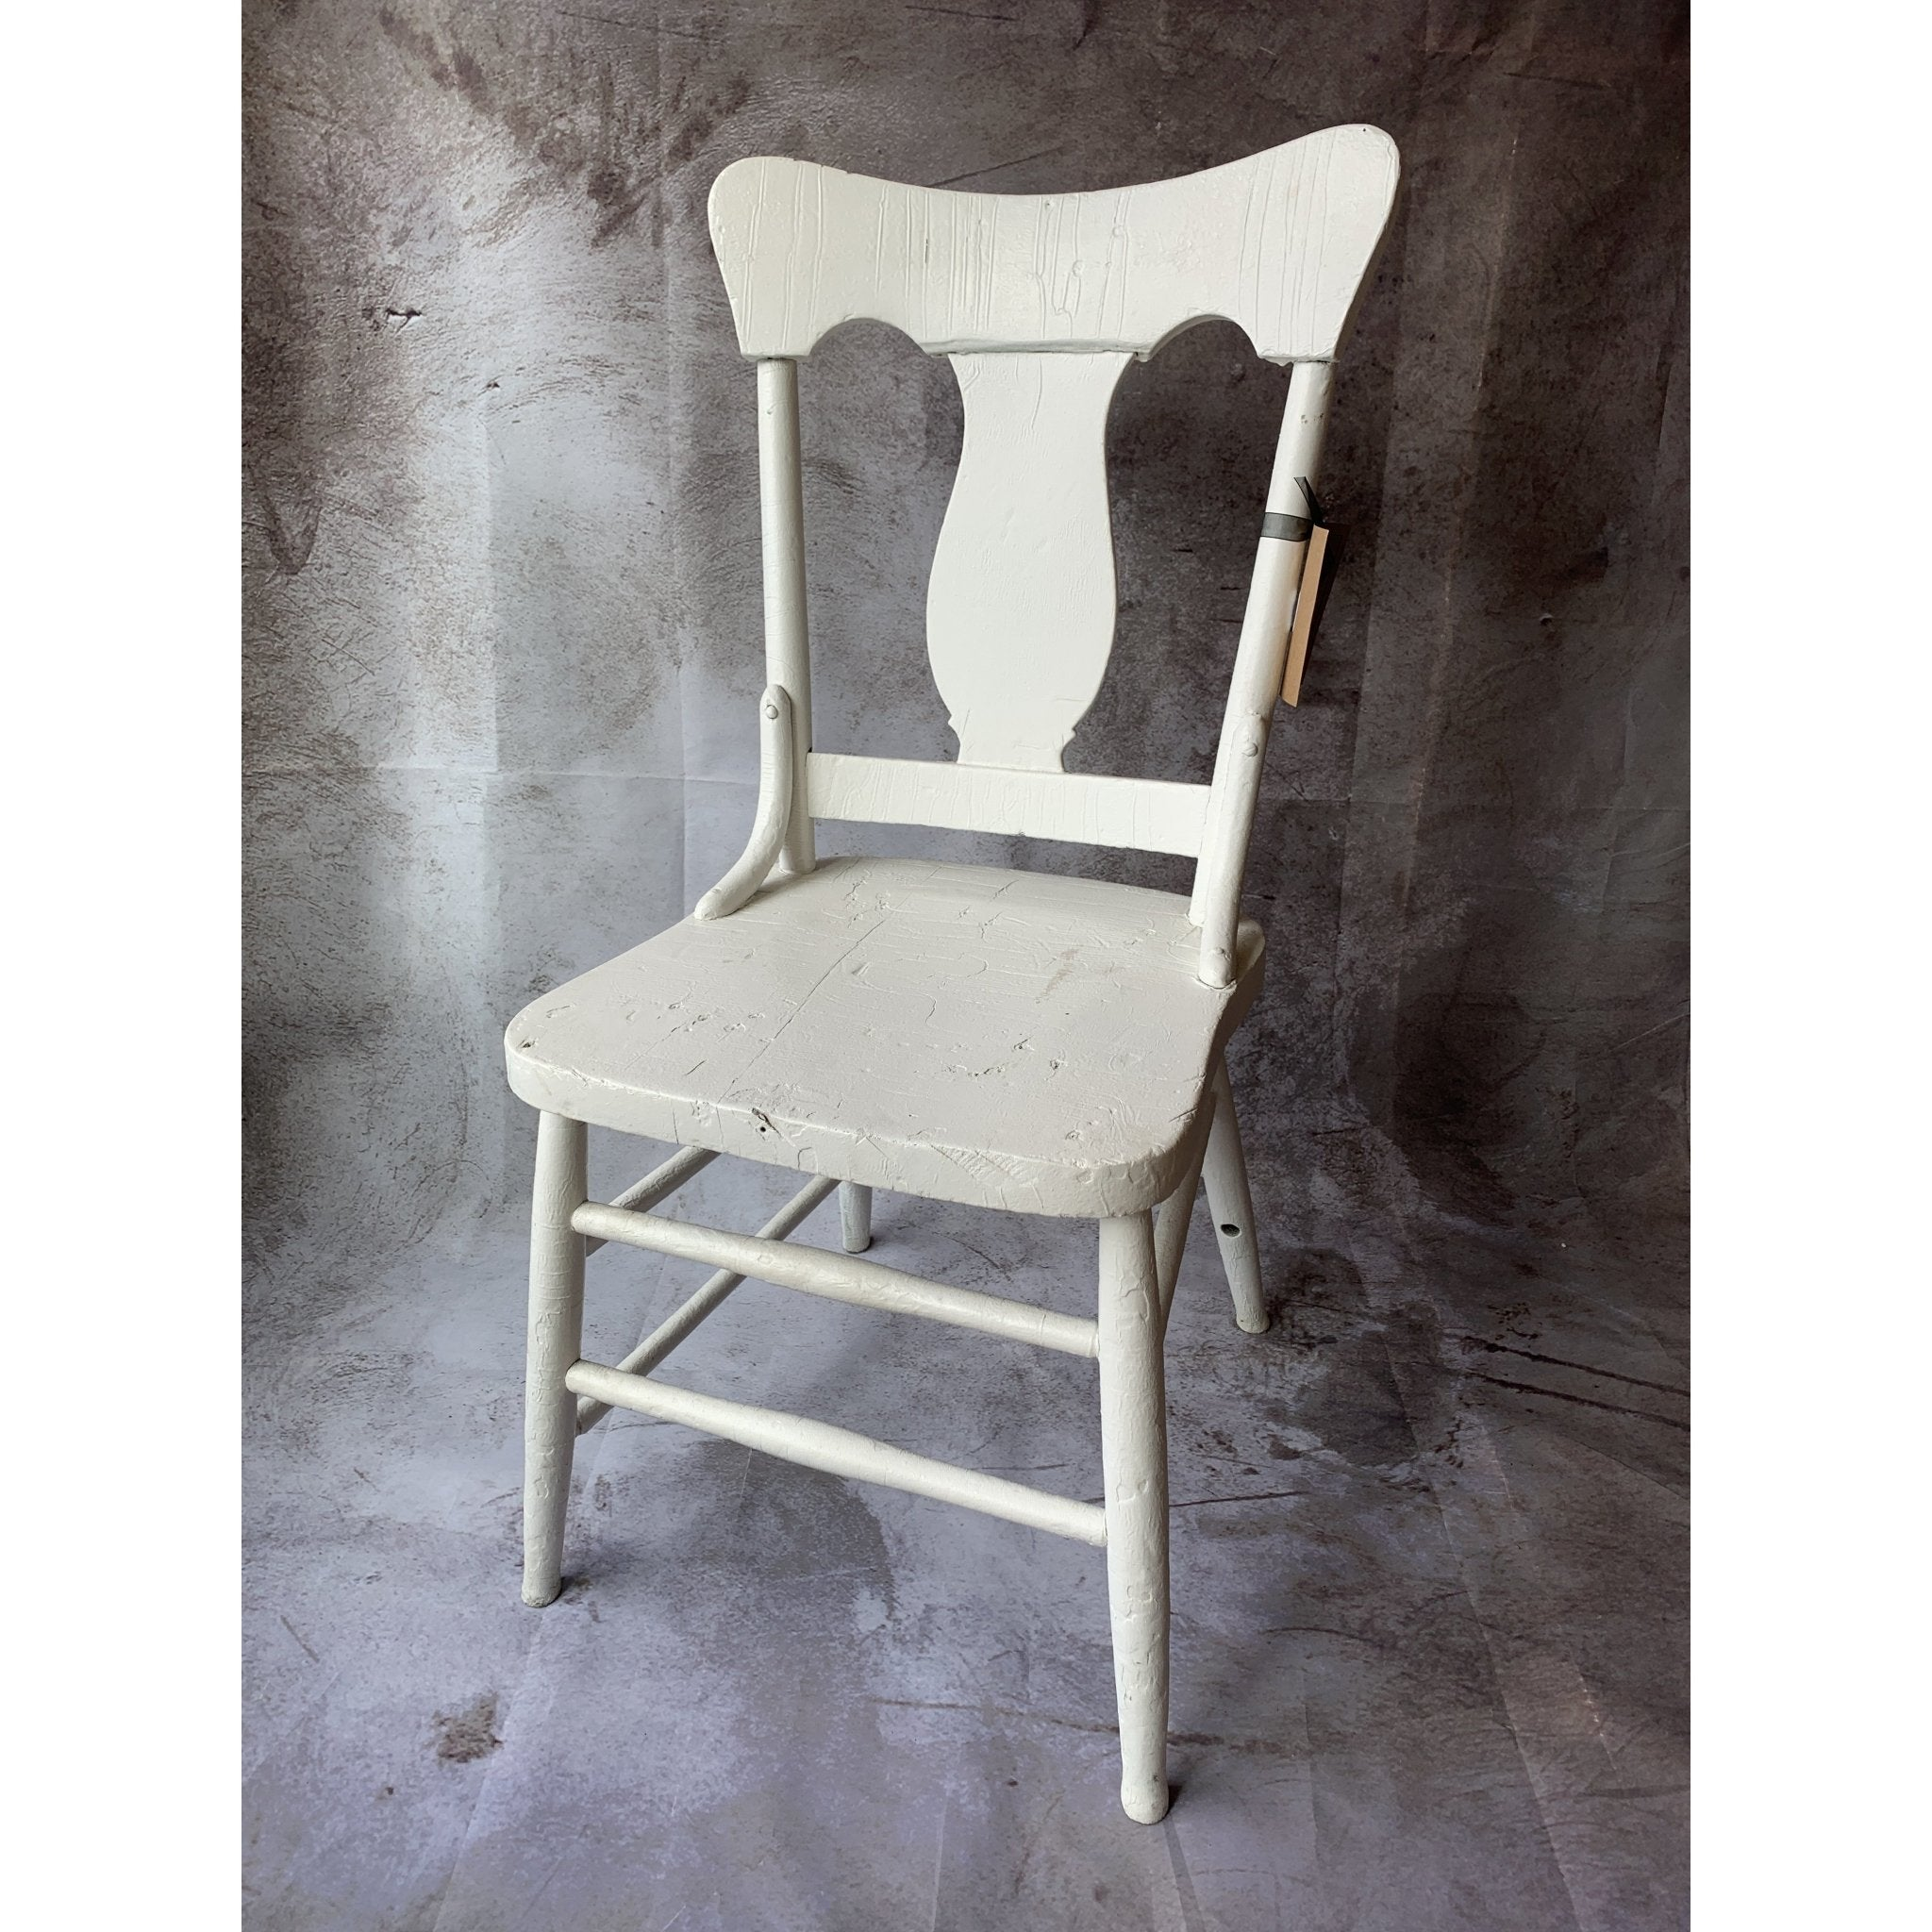 White Painted Chair - Lady of the Lake